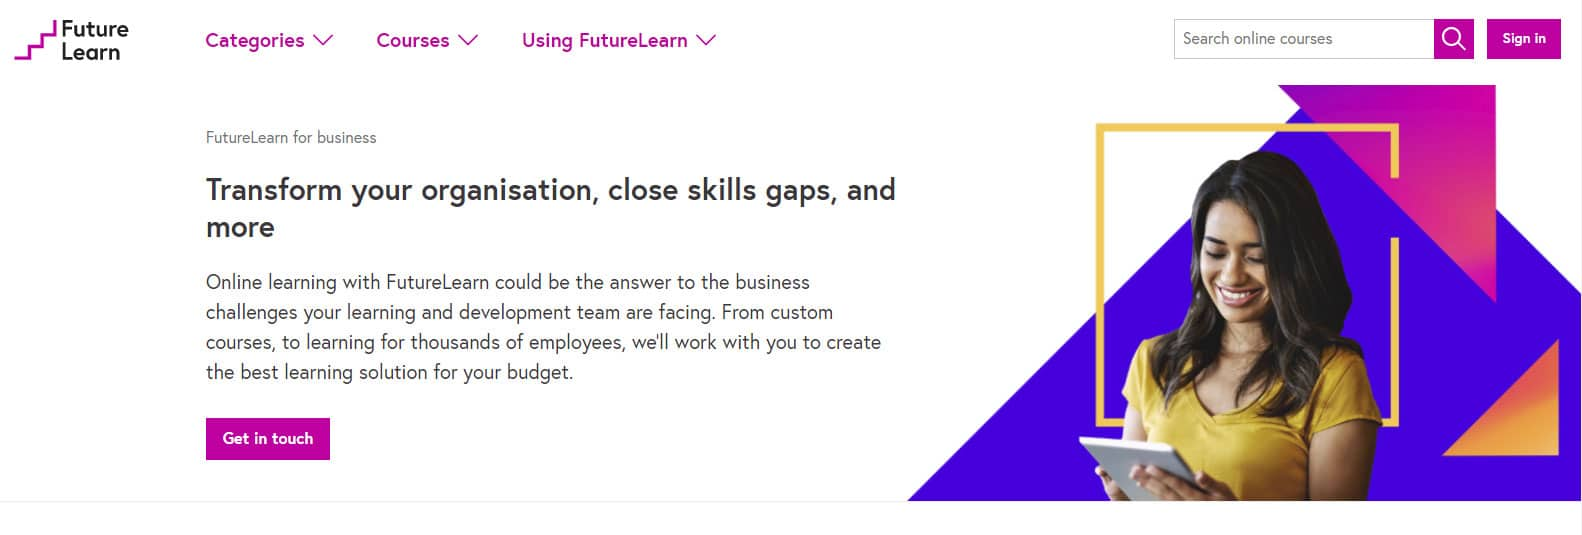 futurelearn-for-business